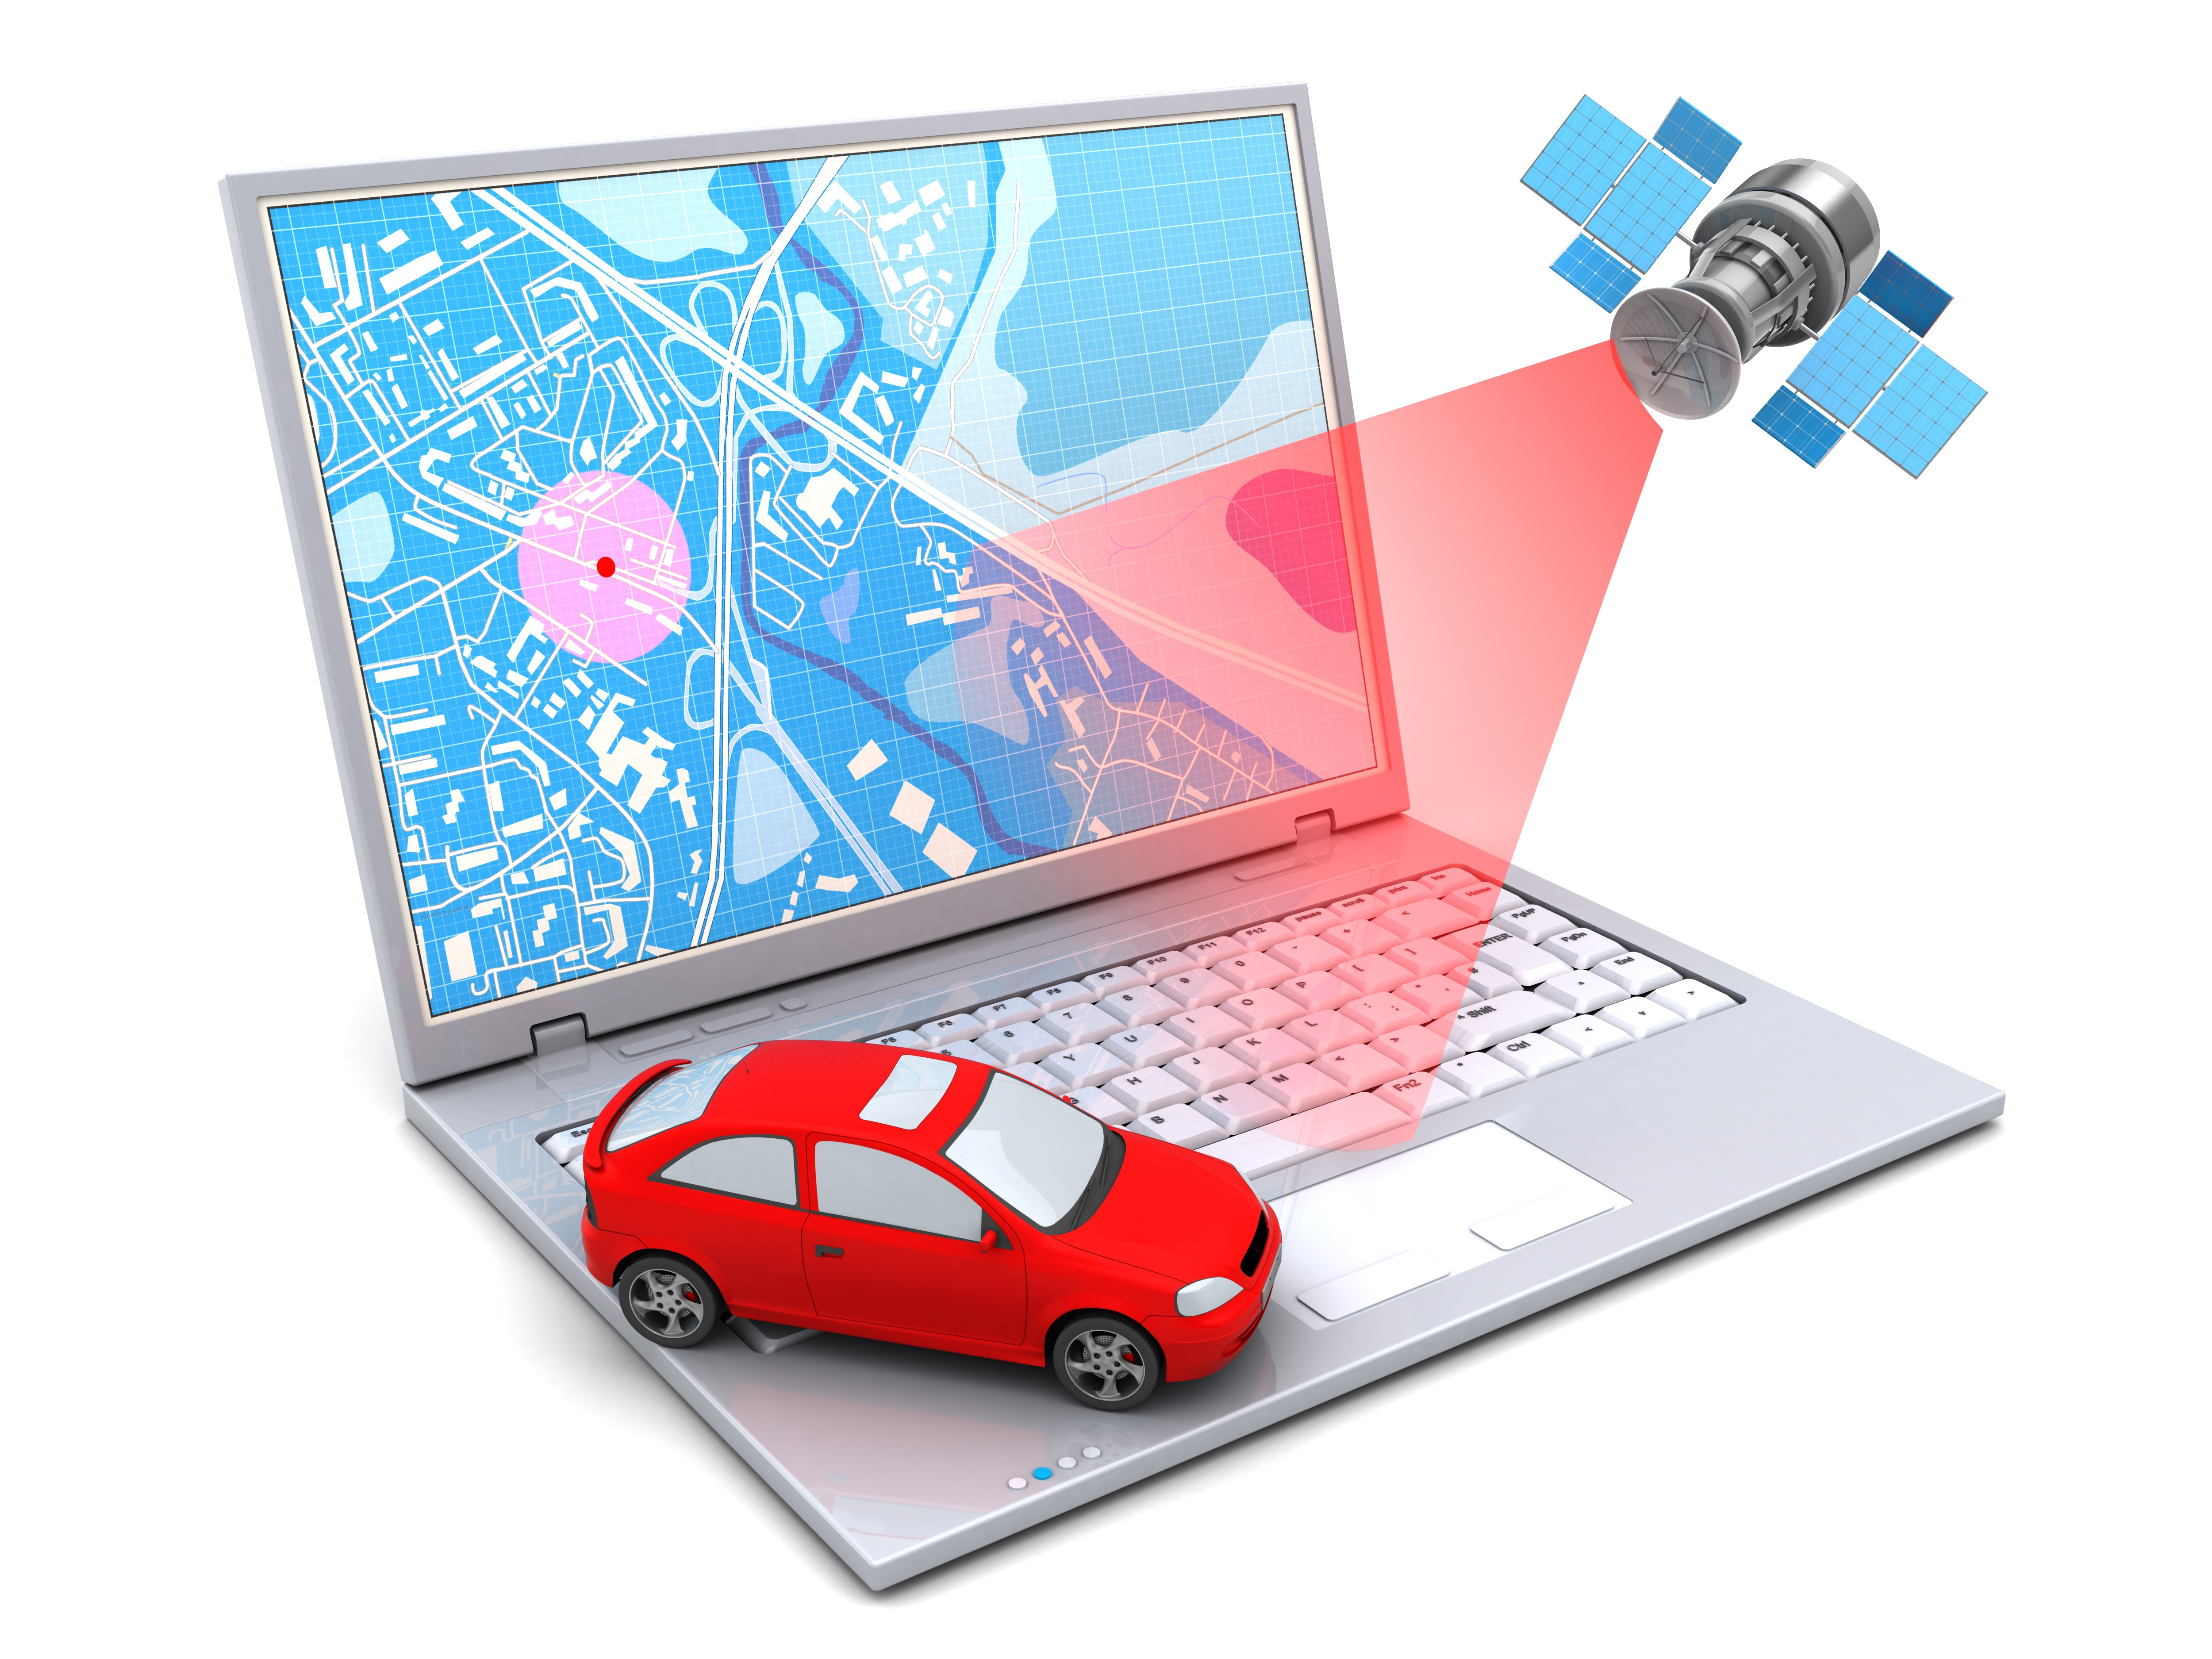 Gps clipart gps tracker. What is a tracking